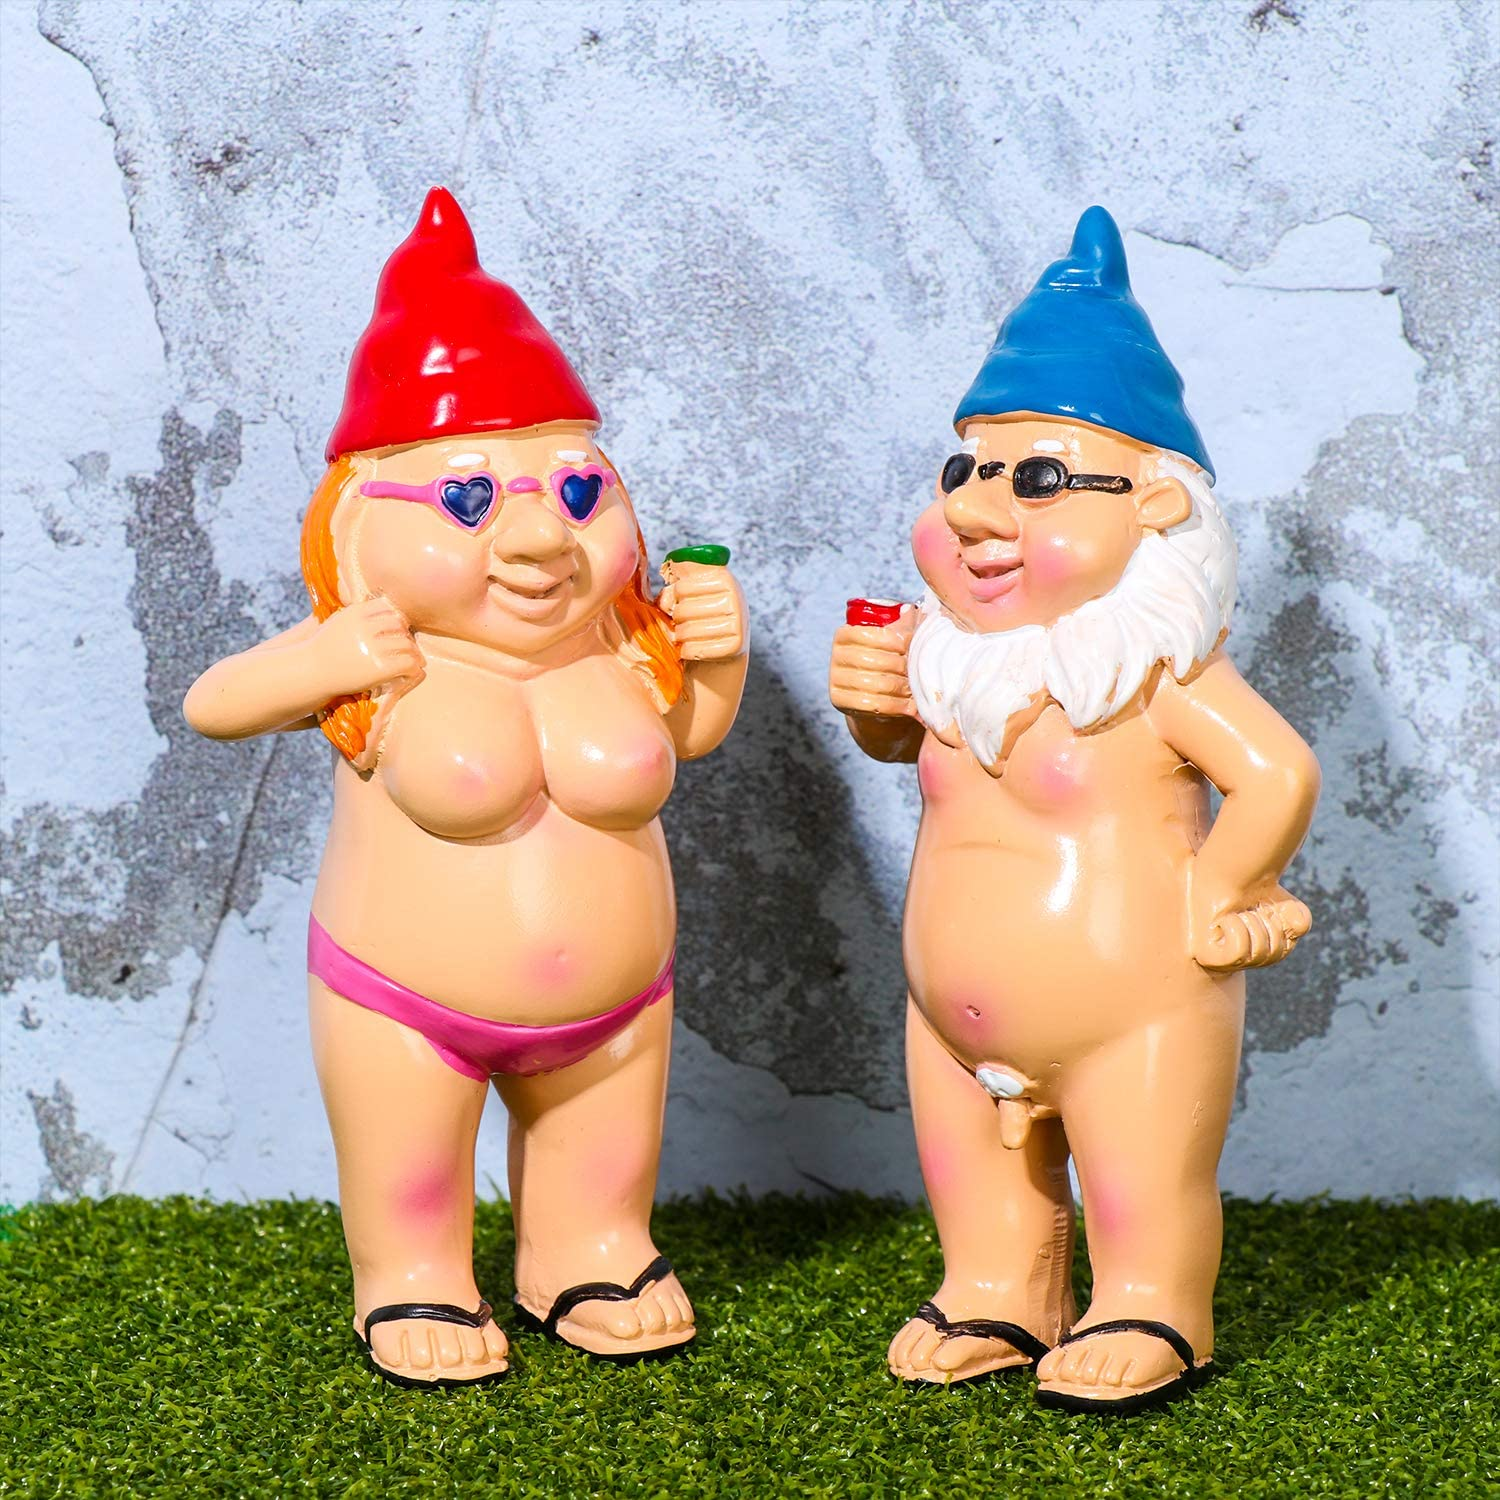 Garden Gnome Statue,Peeing Naked Goblin Gnome for Lawn Ornaments Indoor Outdoor Garden Crafts Decorations, Height: 5.1inch(Man and Woman)